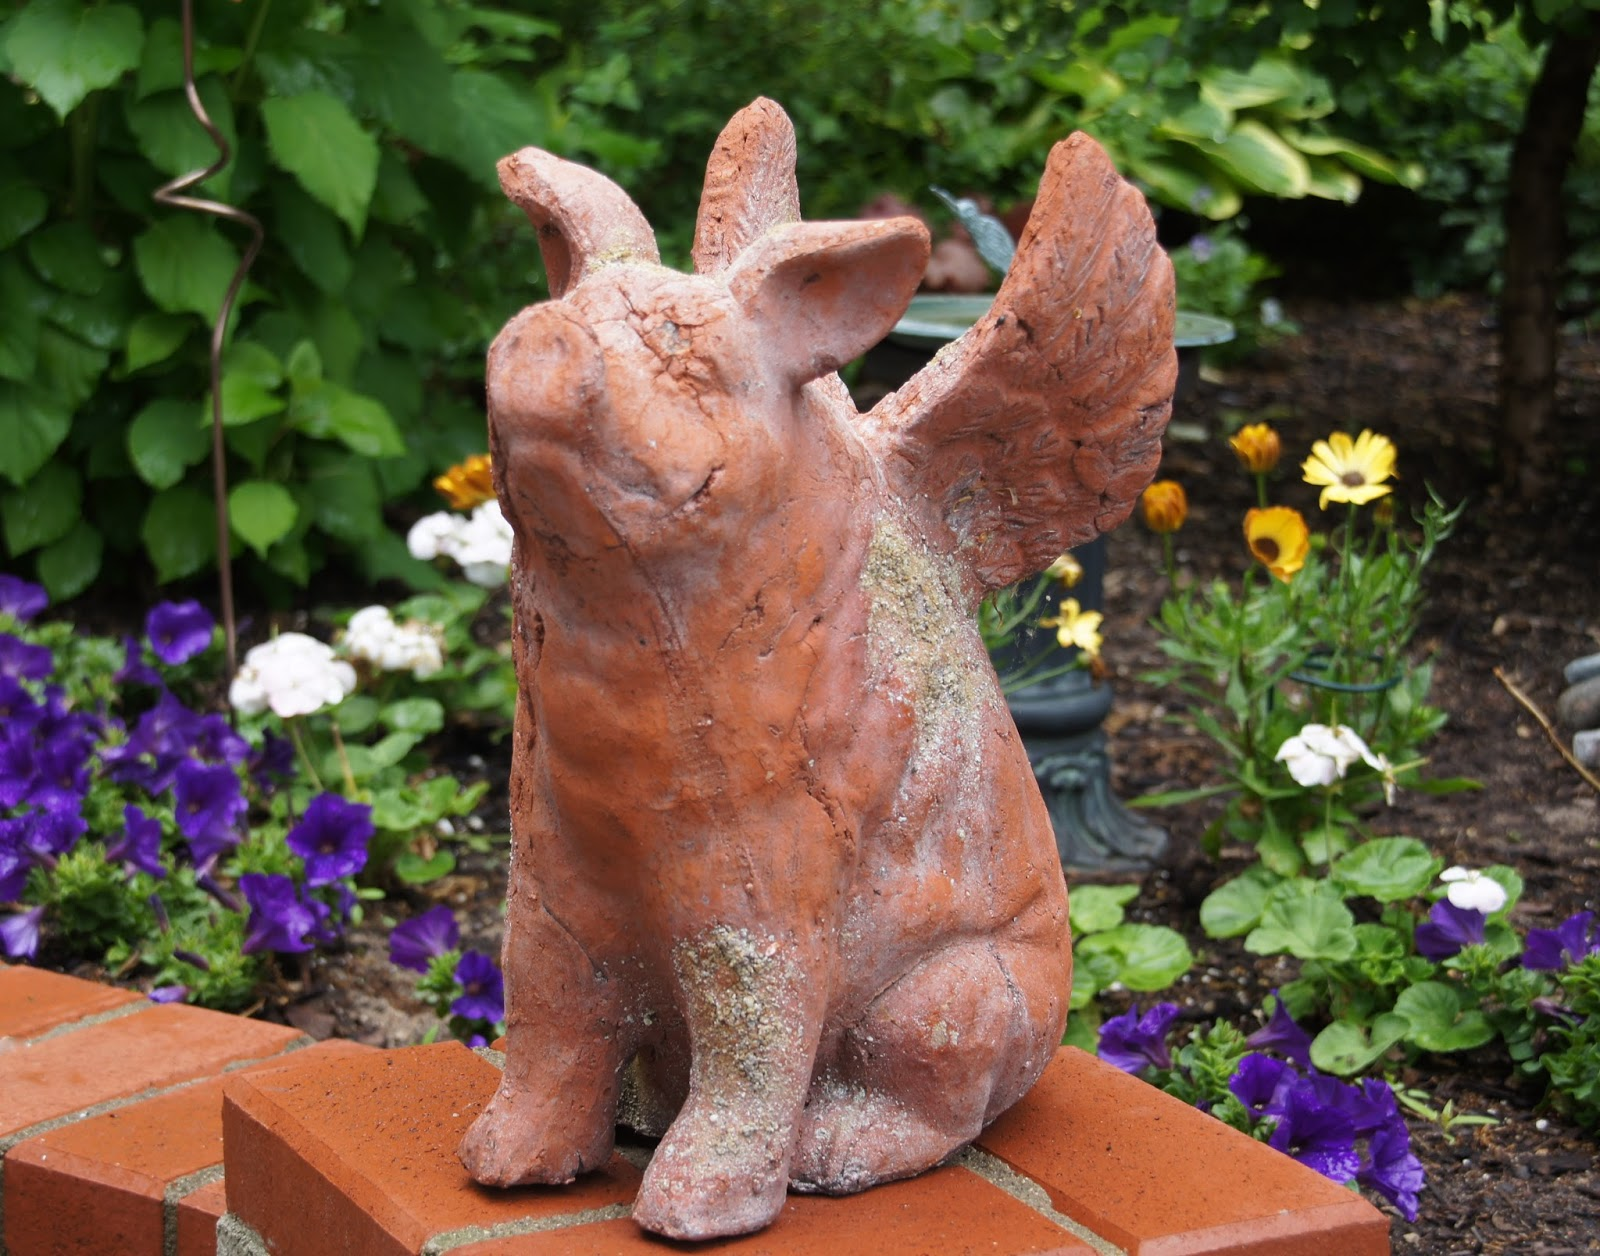 Pig lawn ornament - I Just Can T Help But Find Humor In The Term When Pigs Fly And I Love The Optimism That When Pigs Fly Anything Can Happen